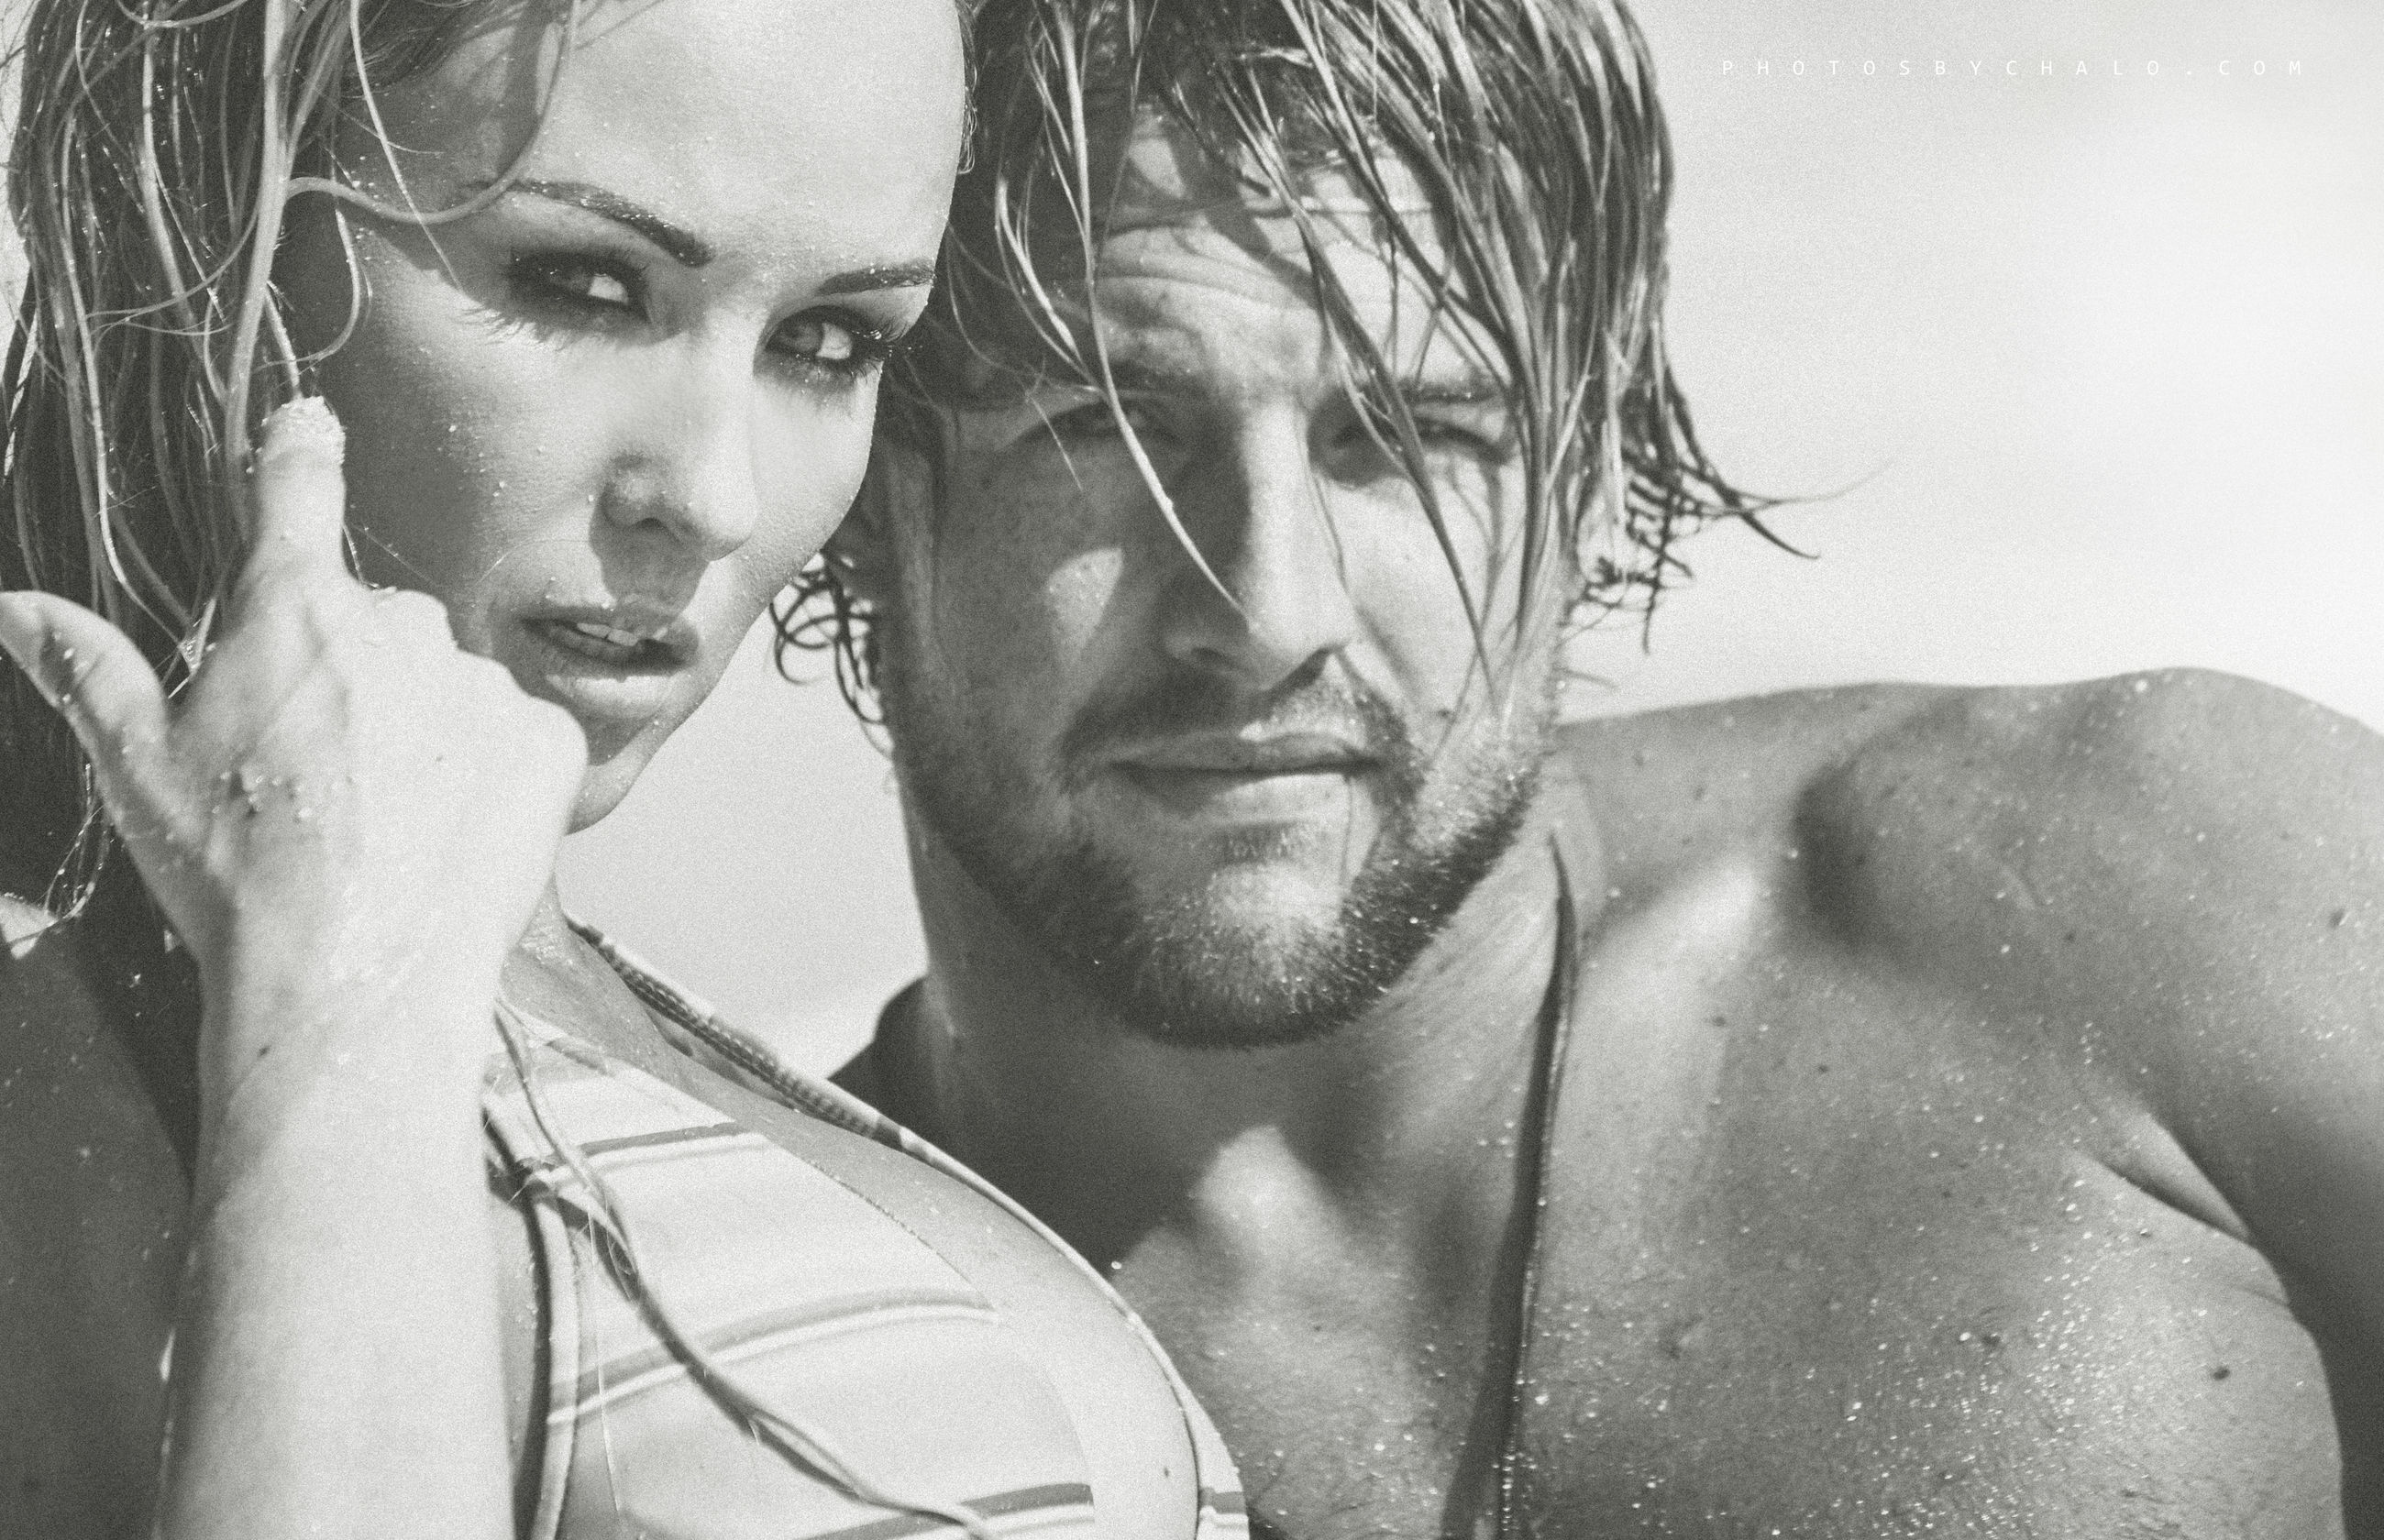 portrait, young adult, young men, real people, headshot, lifestyles, men, front view, people, two people, looking at camera, shirtless, young women, close-up, leisure activity, wet, beard, togetherness, couple - relationship, wet hair